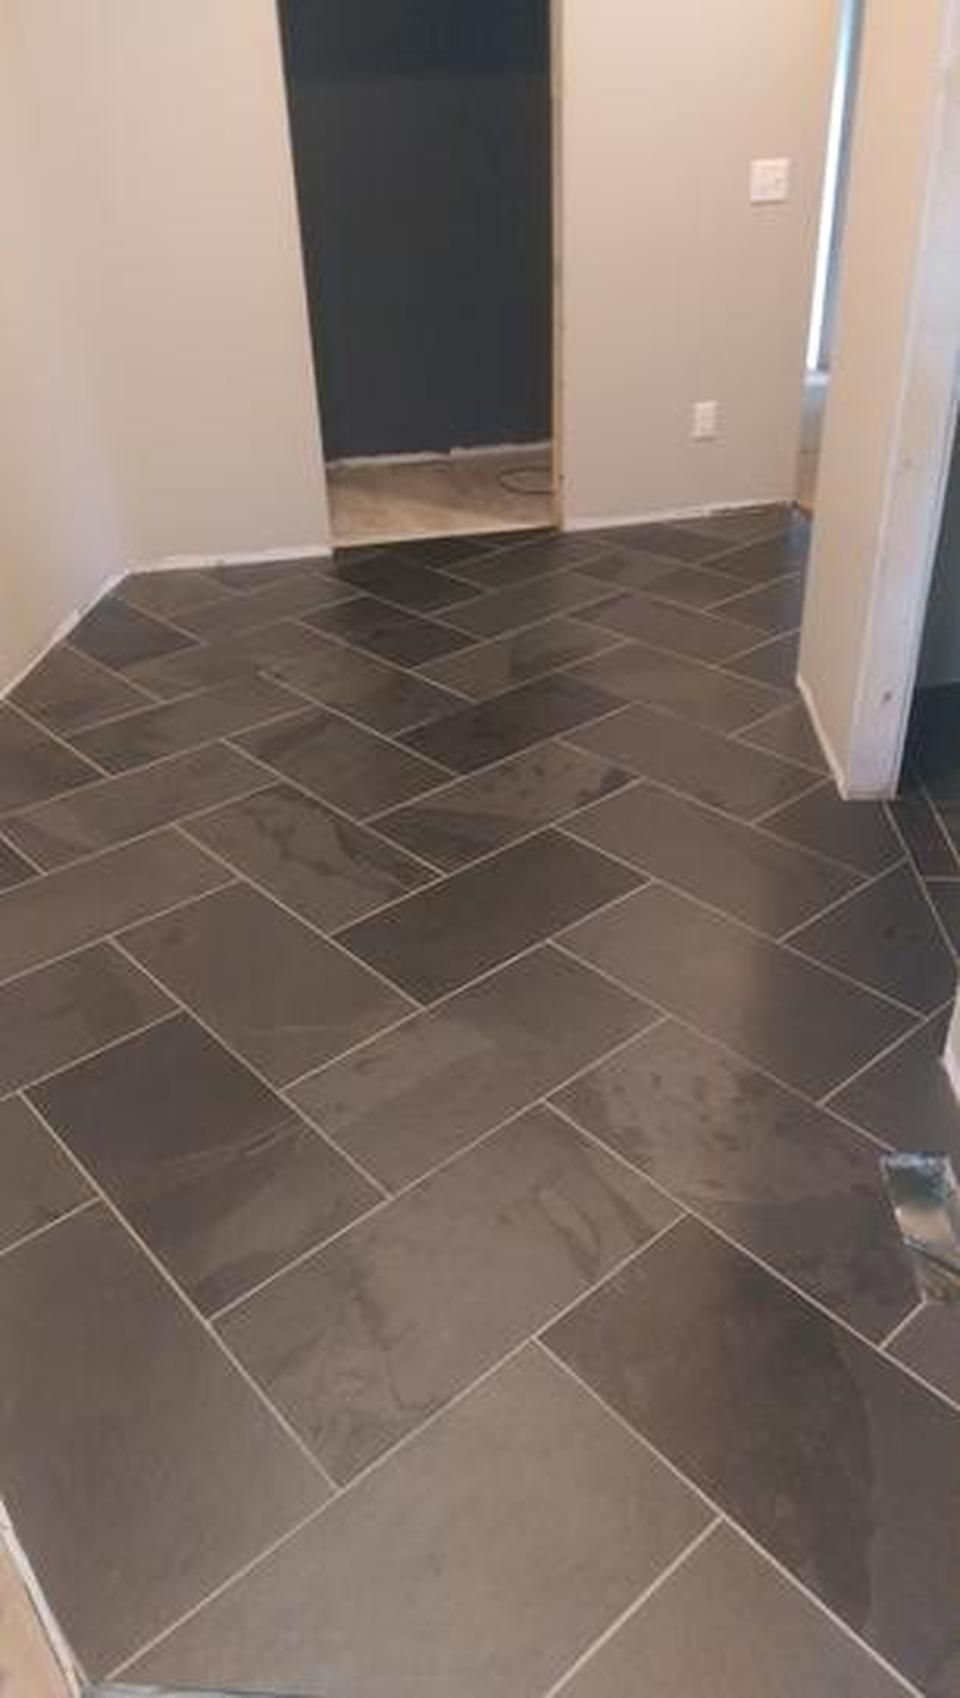 Brazilian Black 12x24 Set On Herringbone Pattern In 2020 Slate Flooring Flooring Trendy Kitchen Tile